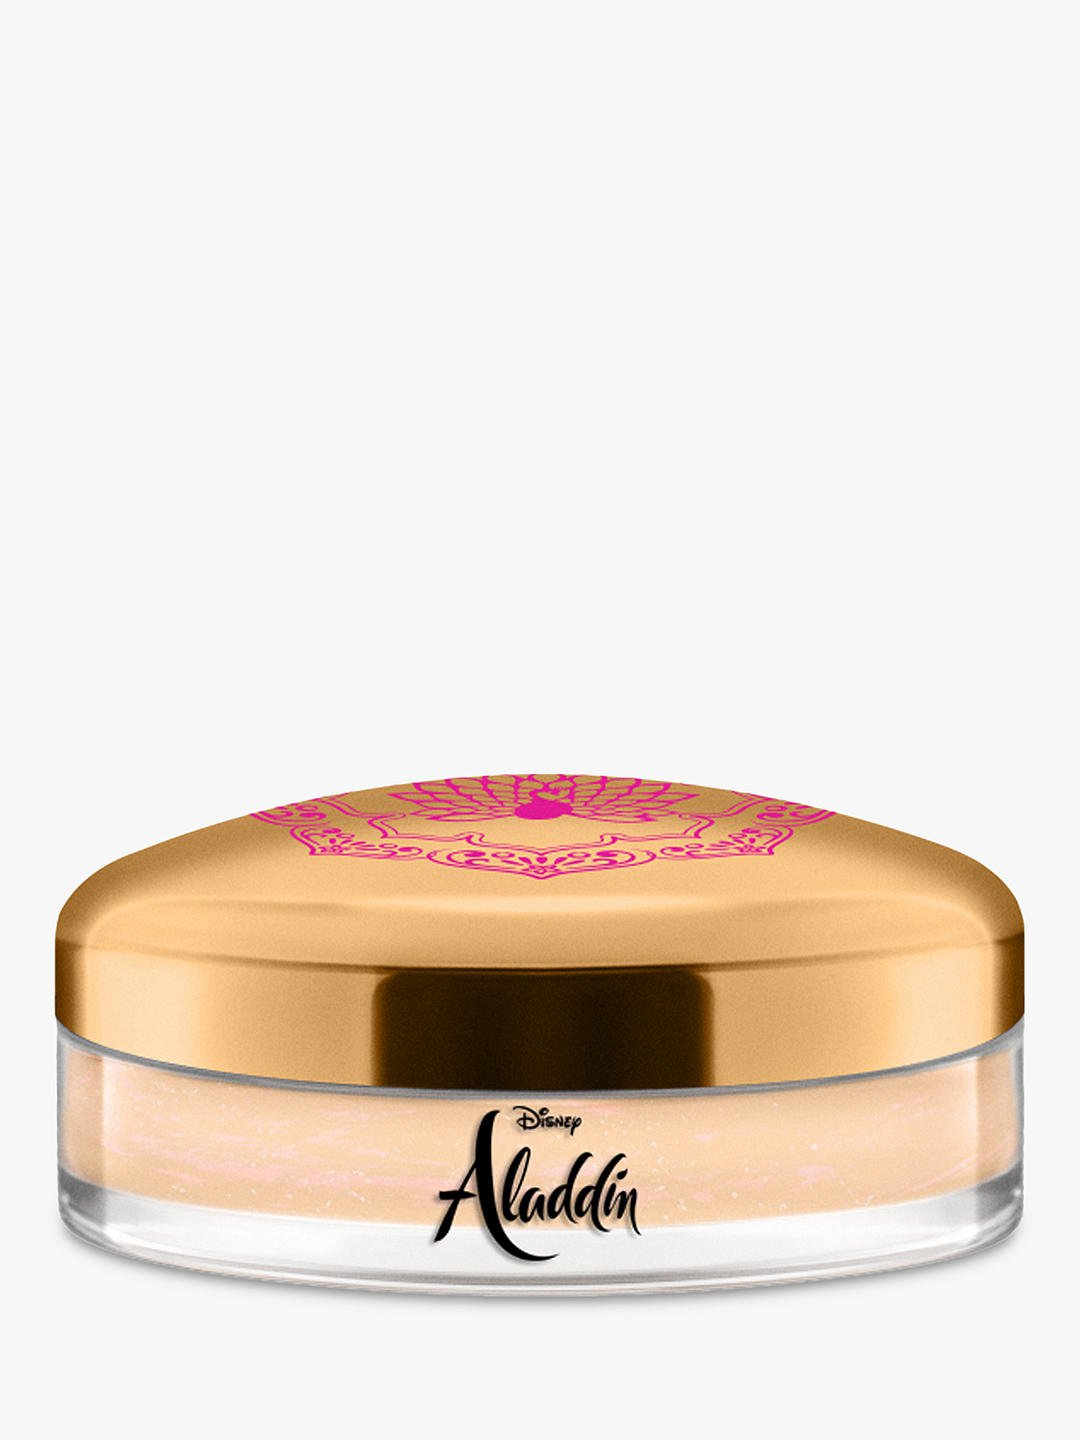 MAC Crystal Glaze Gloss - The Disney Aladdin Collection By MAC, #1 Wish at John Lewis & Partners